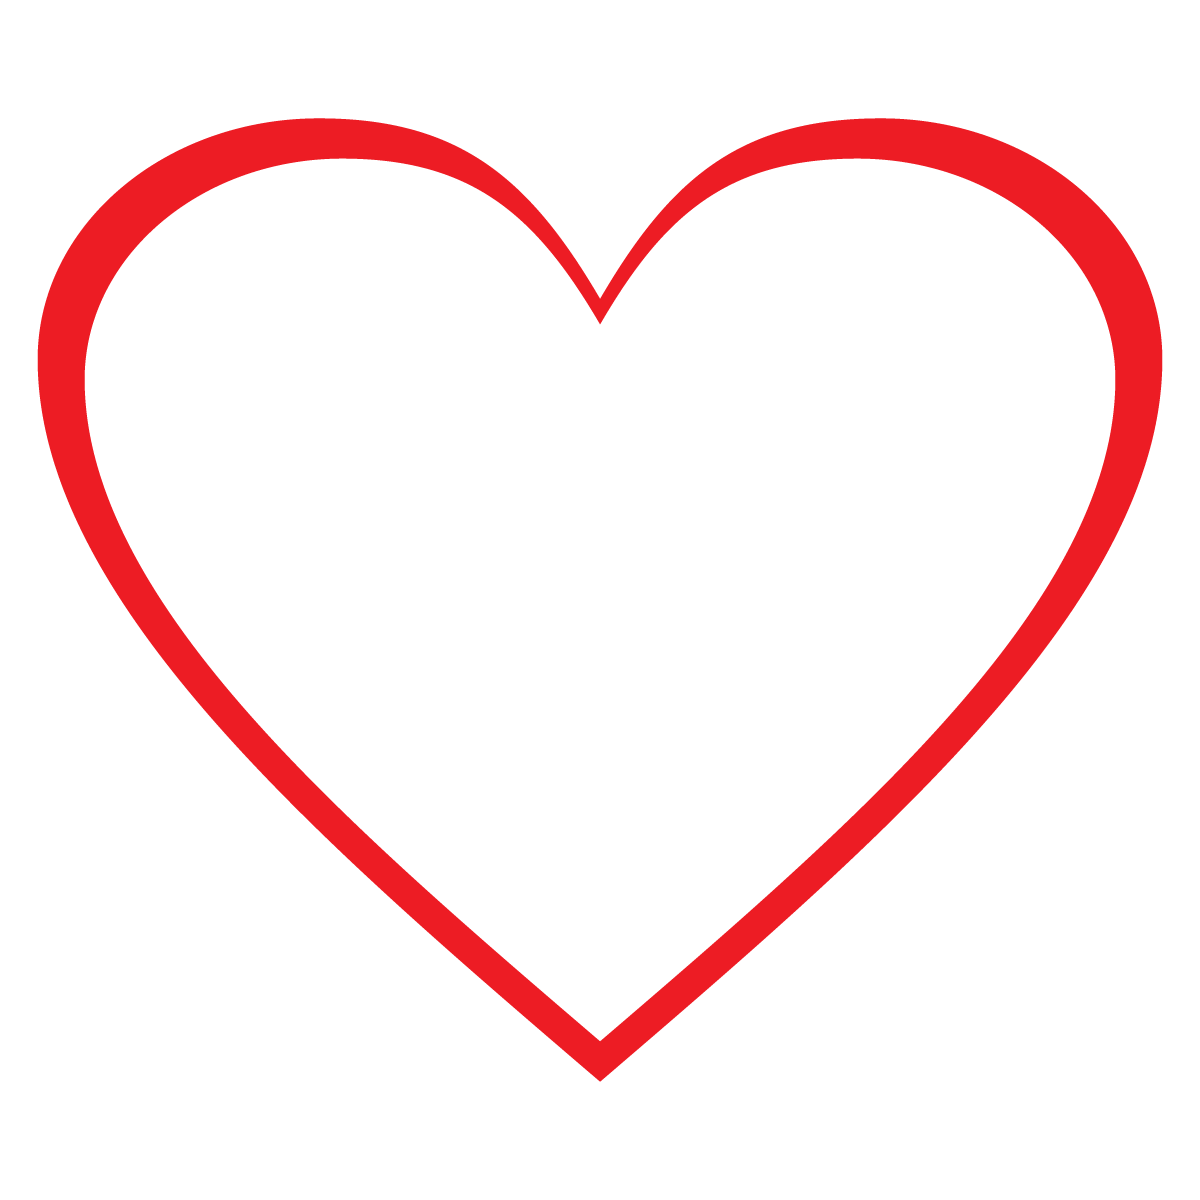 Photo Of Hearts - ClipArt Best